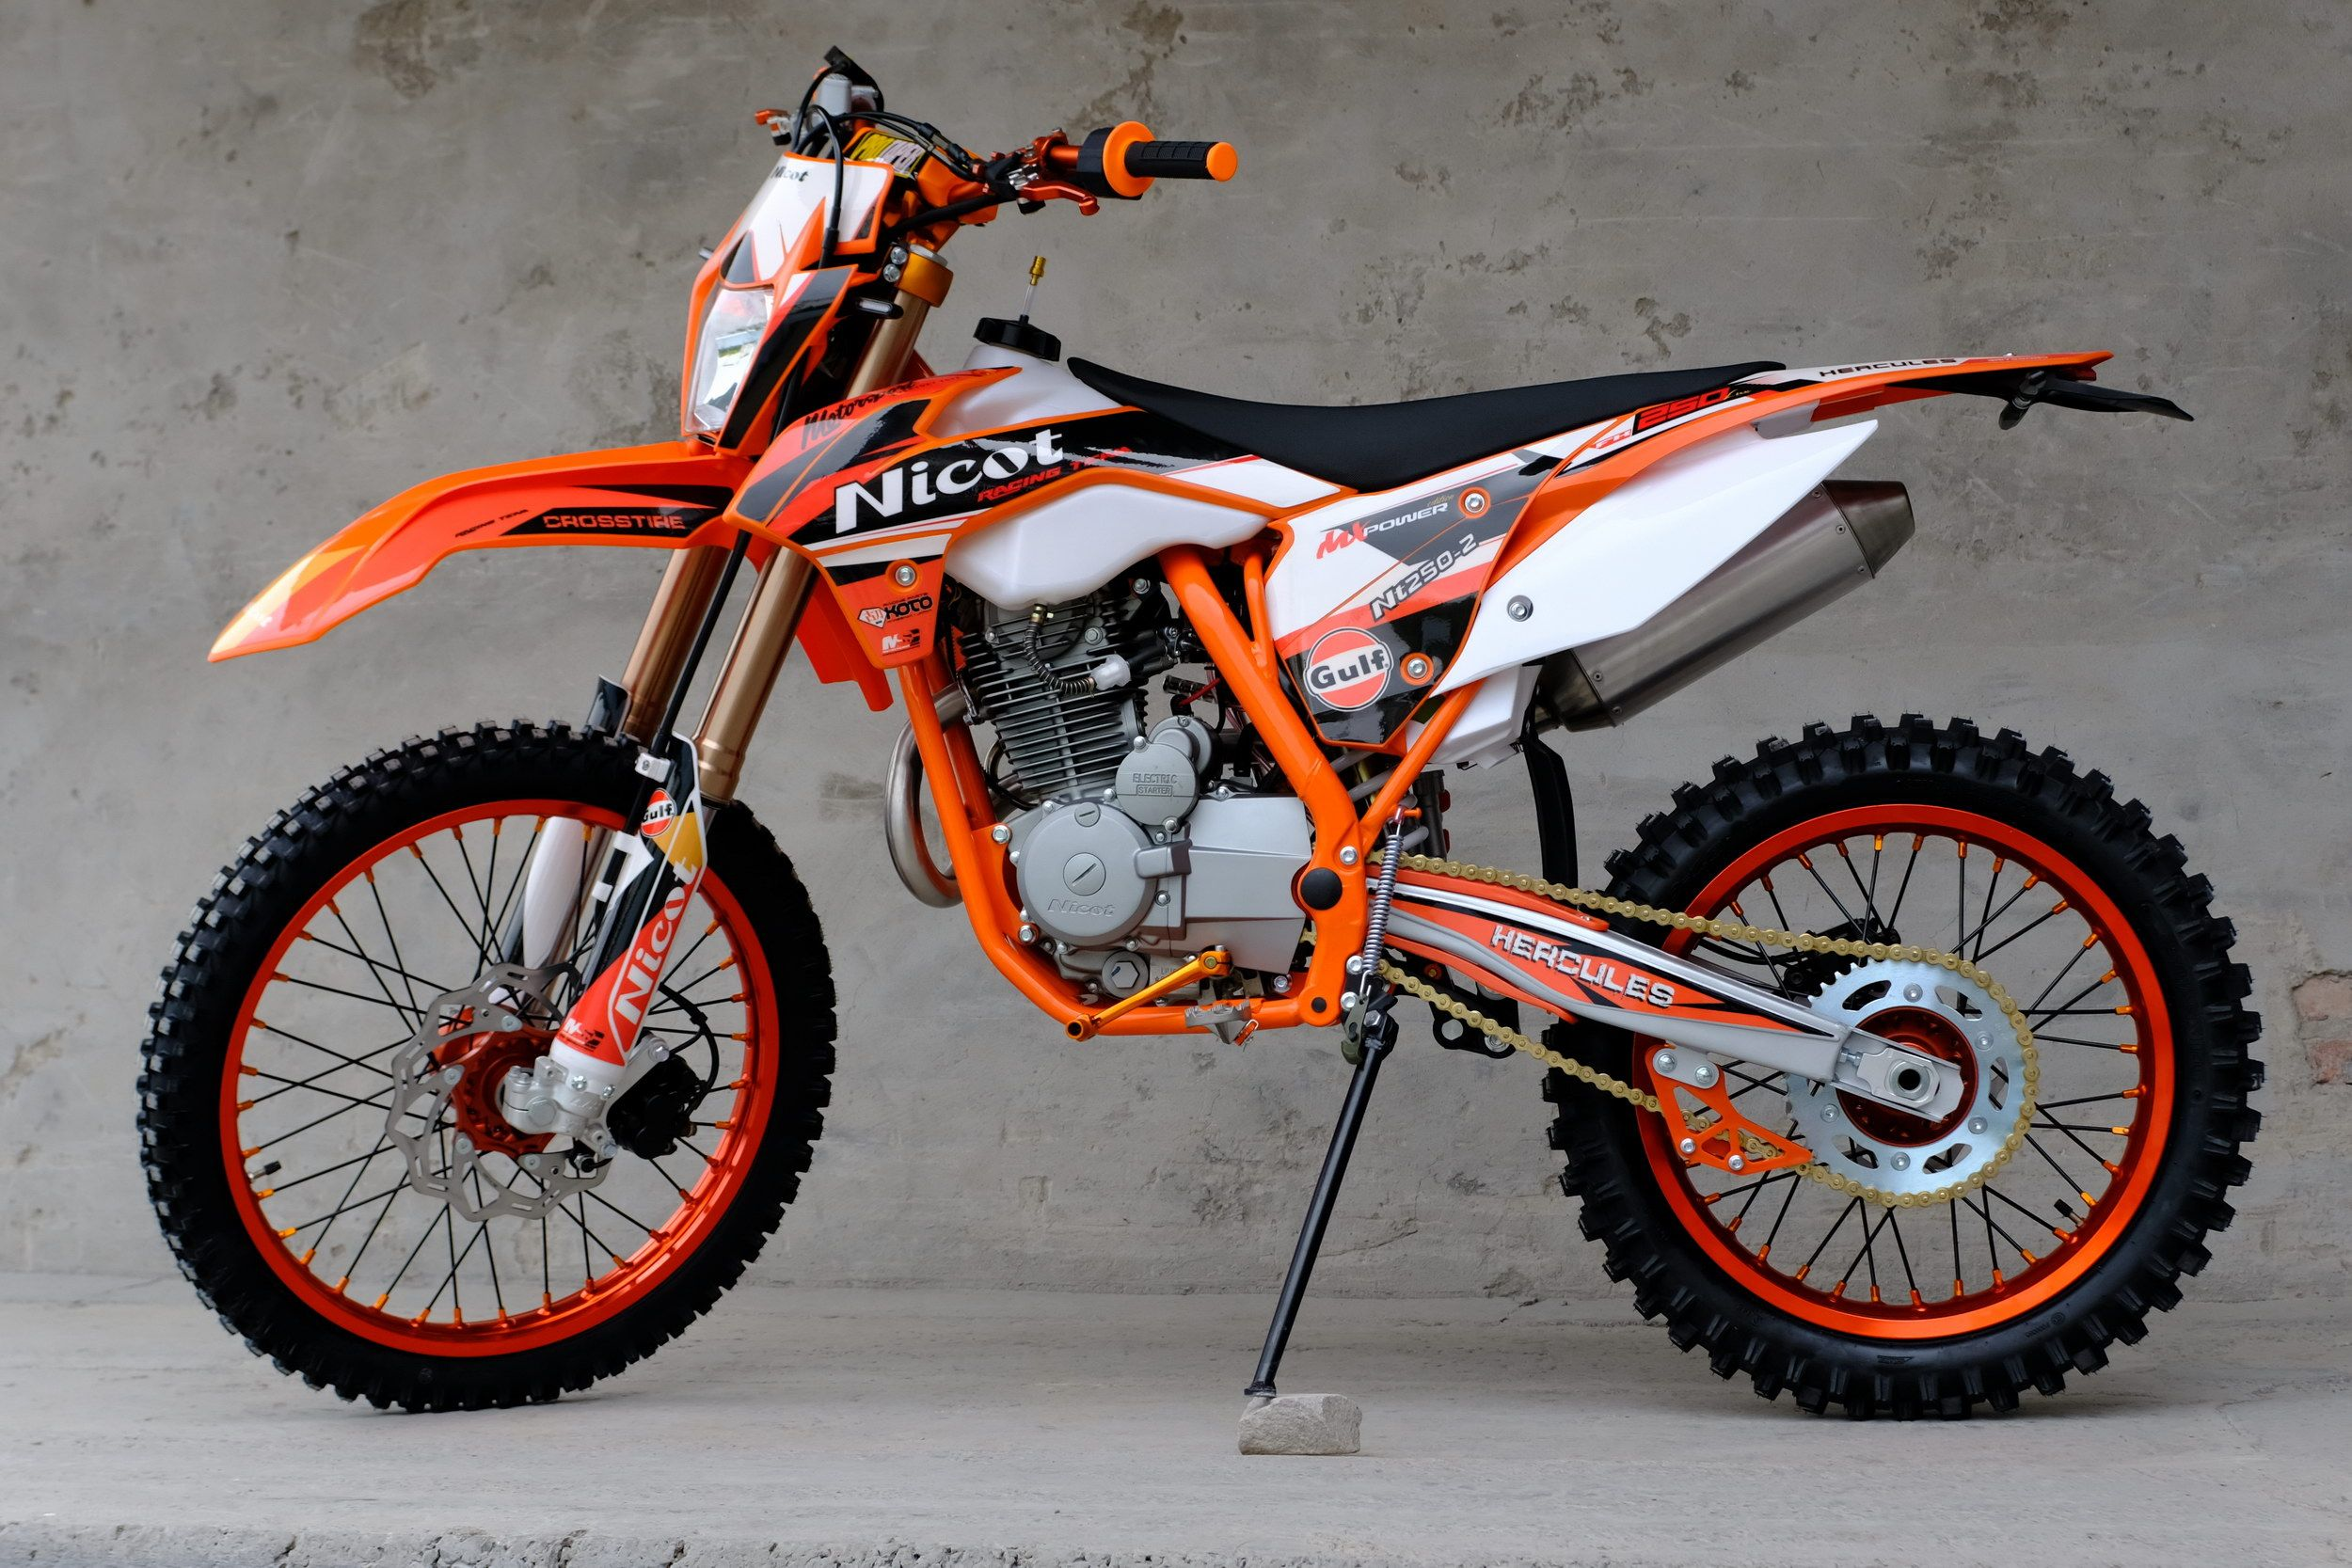 Nicot Hercules 250cc Dirt Bike Dirt Bikes For Sale Dirt Bike Dirt Bikes